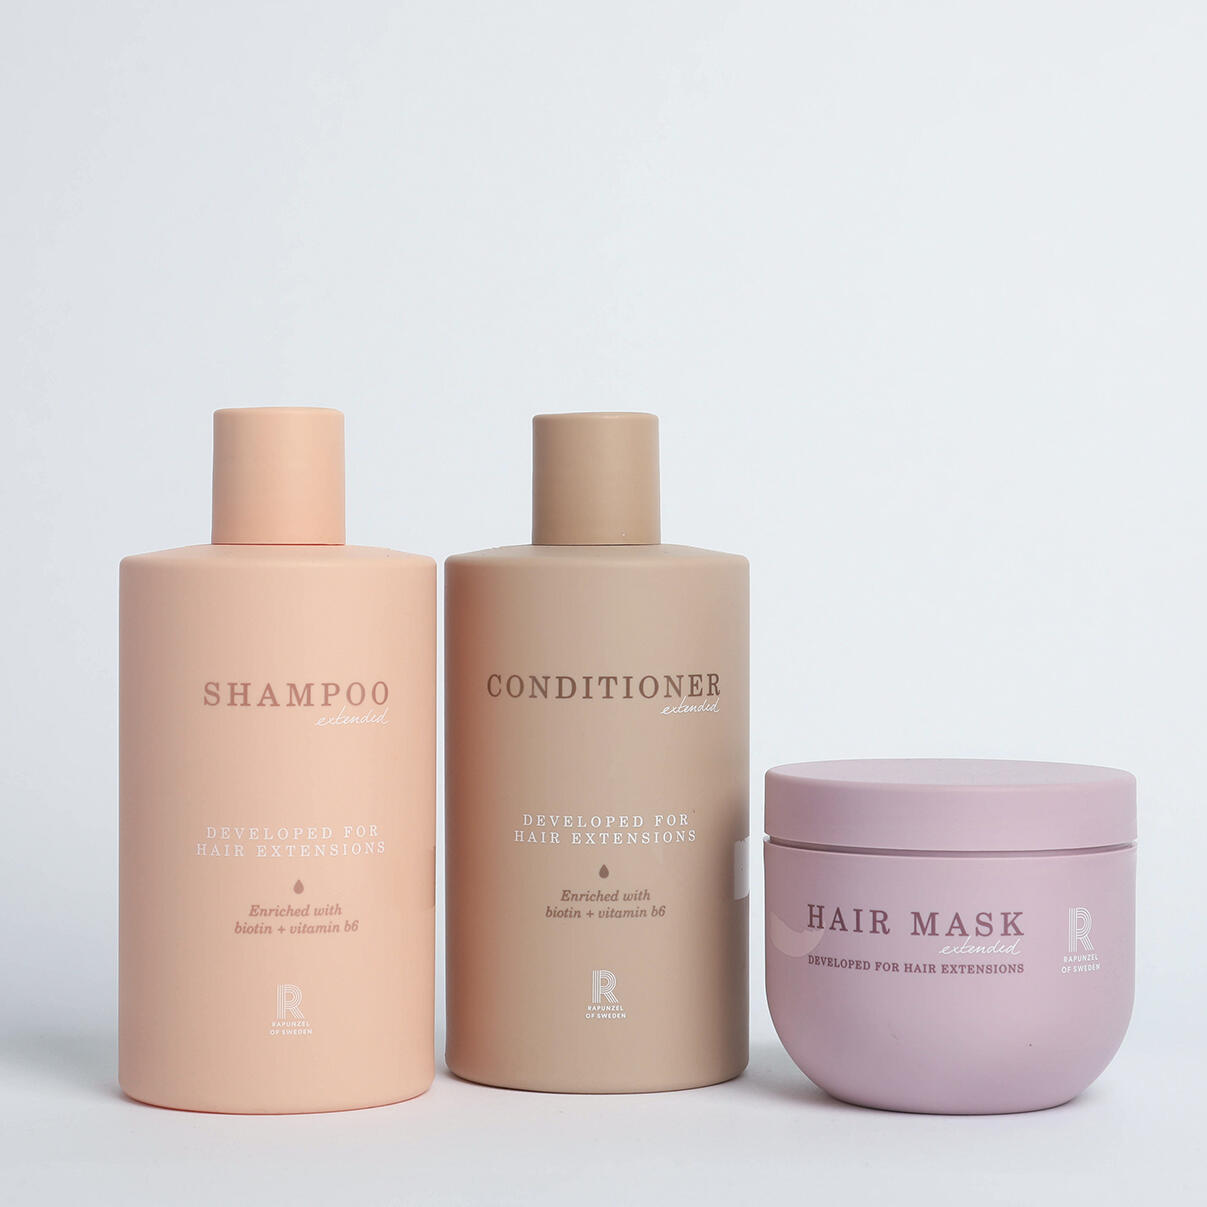 Rapunzel Shampoo for hair extensions